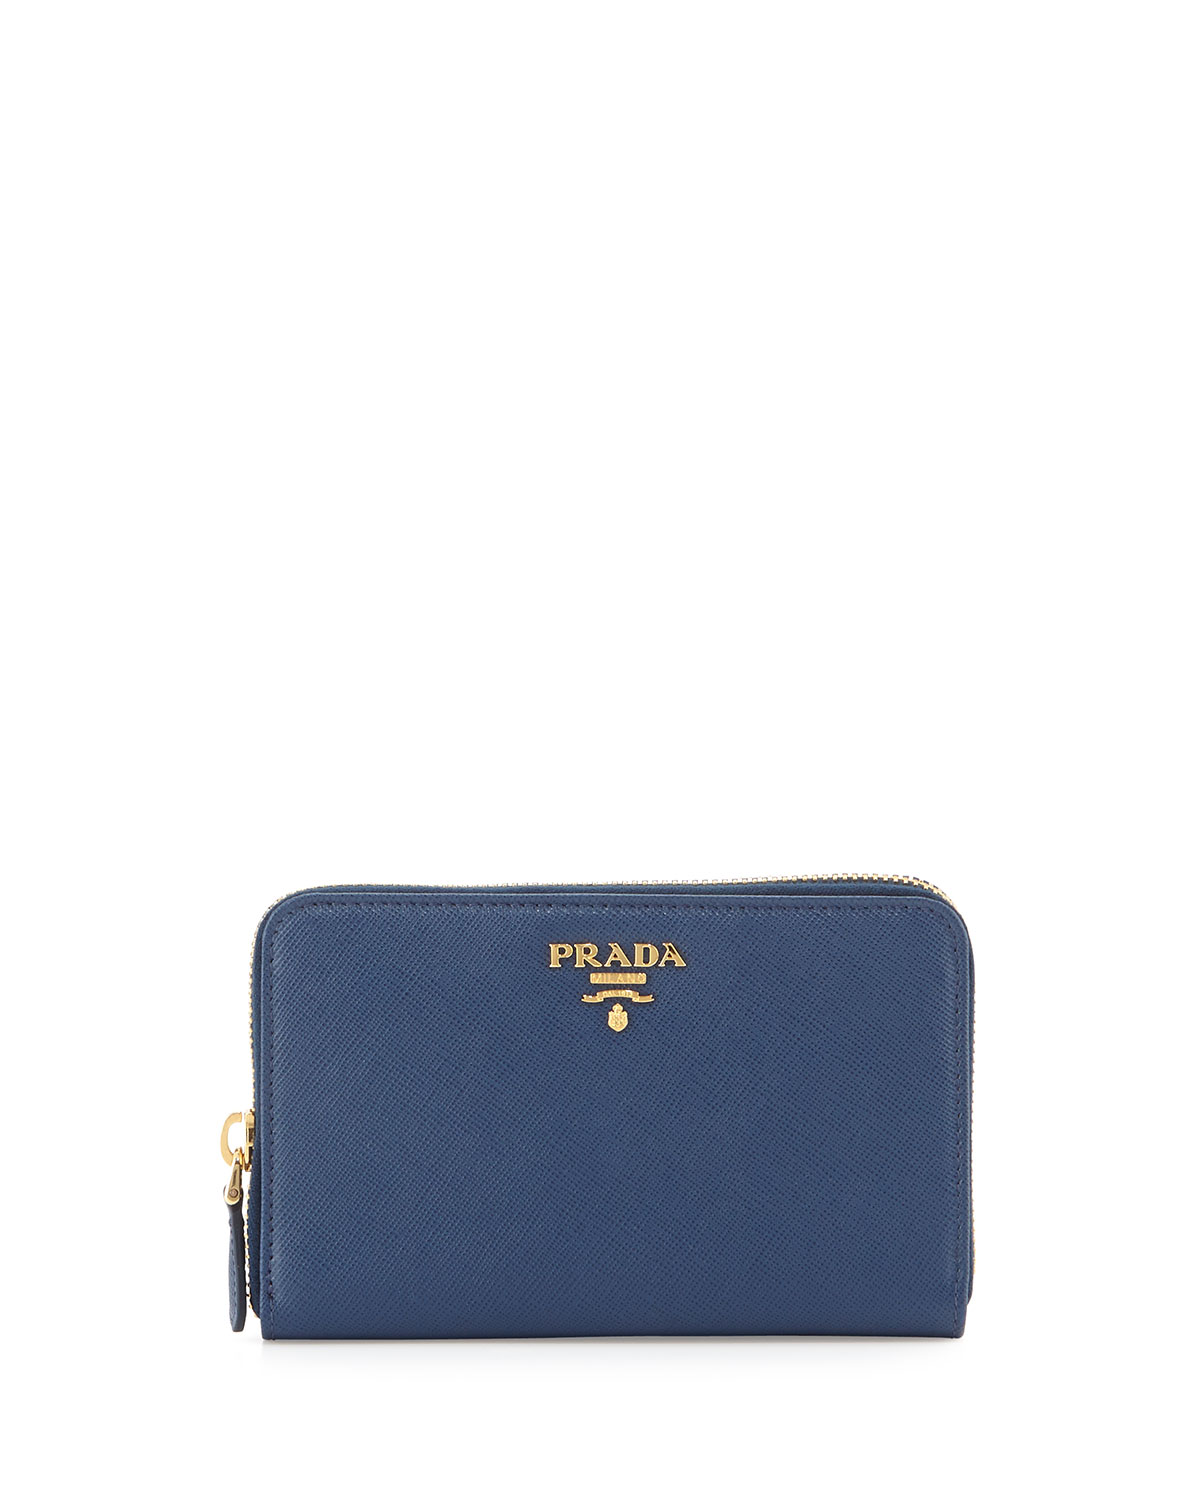 7edcc2dcb970 Prada Saffiano Leather French Wallet, Blue (Bluette) | Neiman Marcus